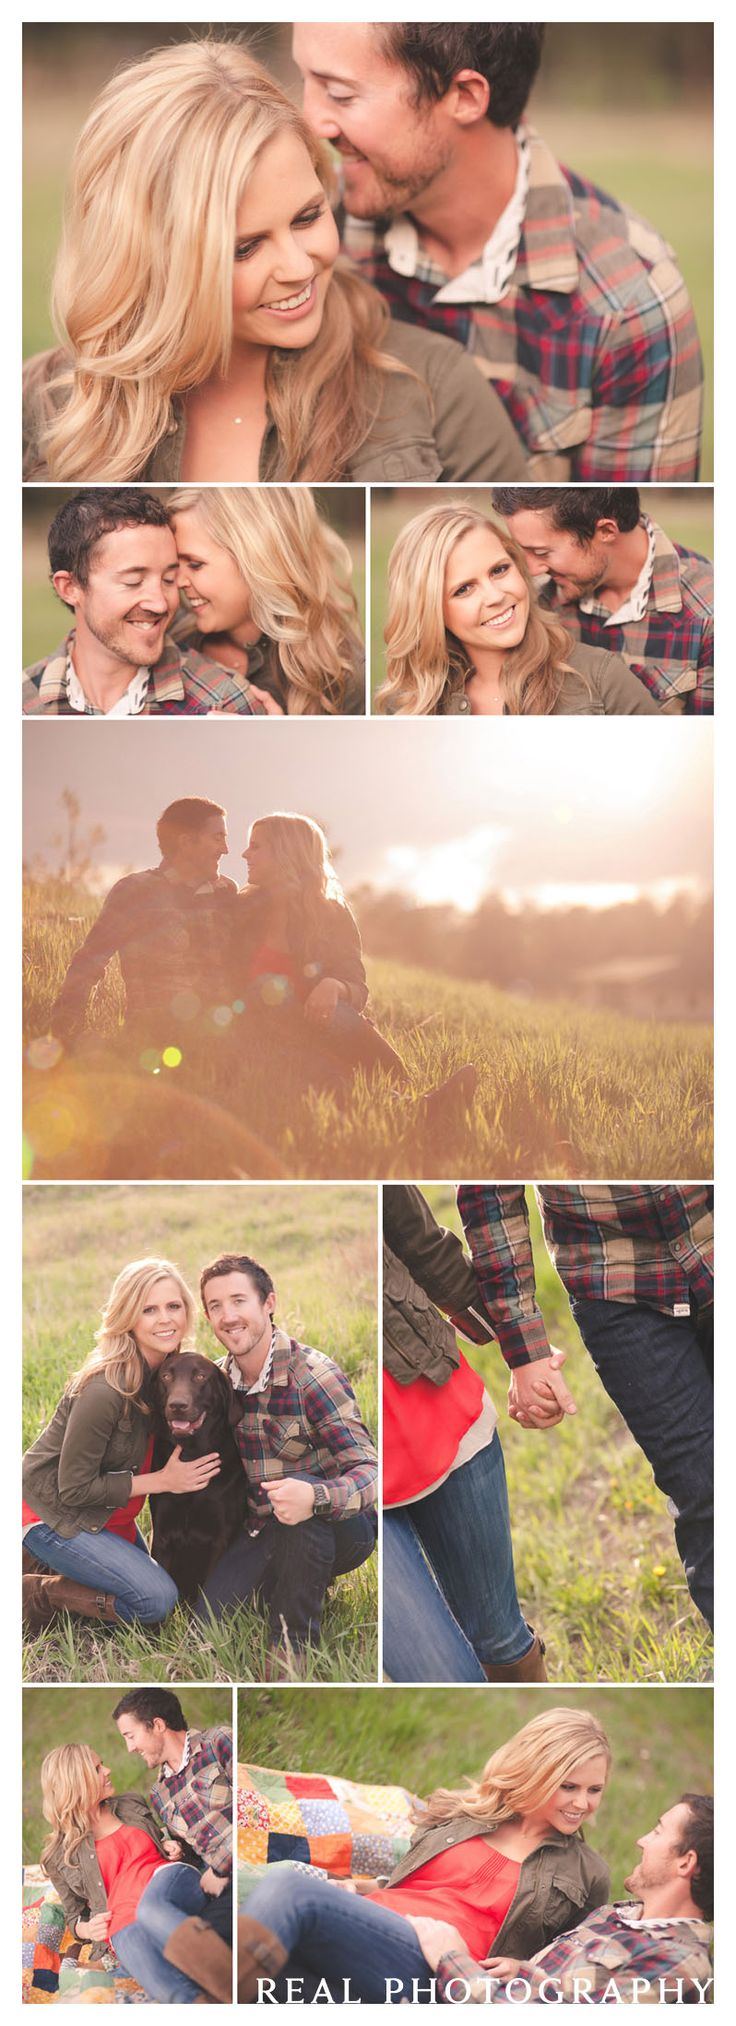 couple posing ideas with dog and quilt rural setting sunset pictures engagement photographer colorado springs